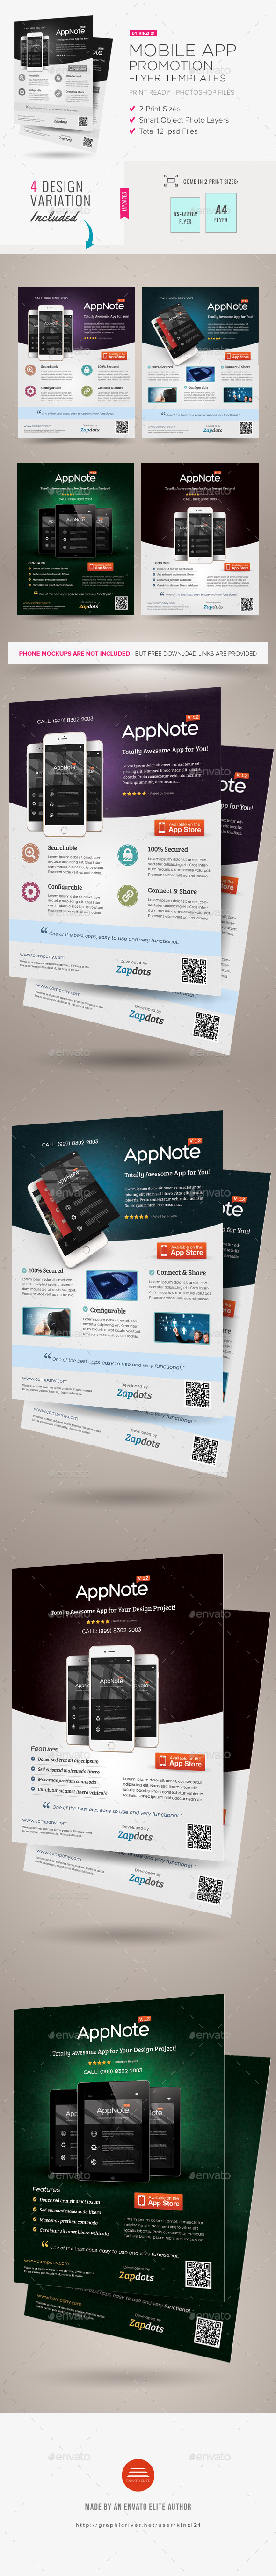 Mobile App Promotion Flyers - Commerce Flyers